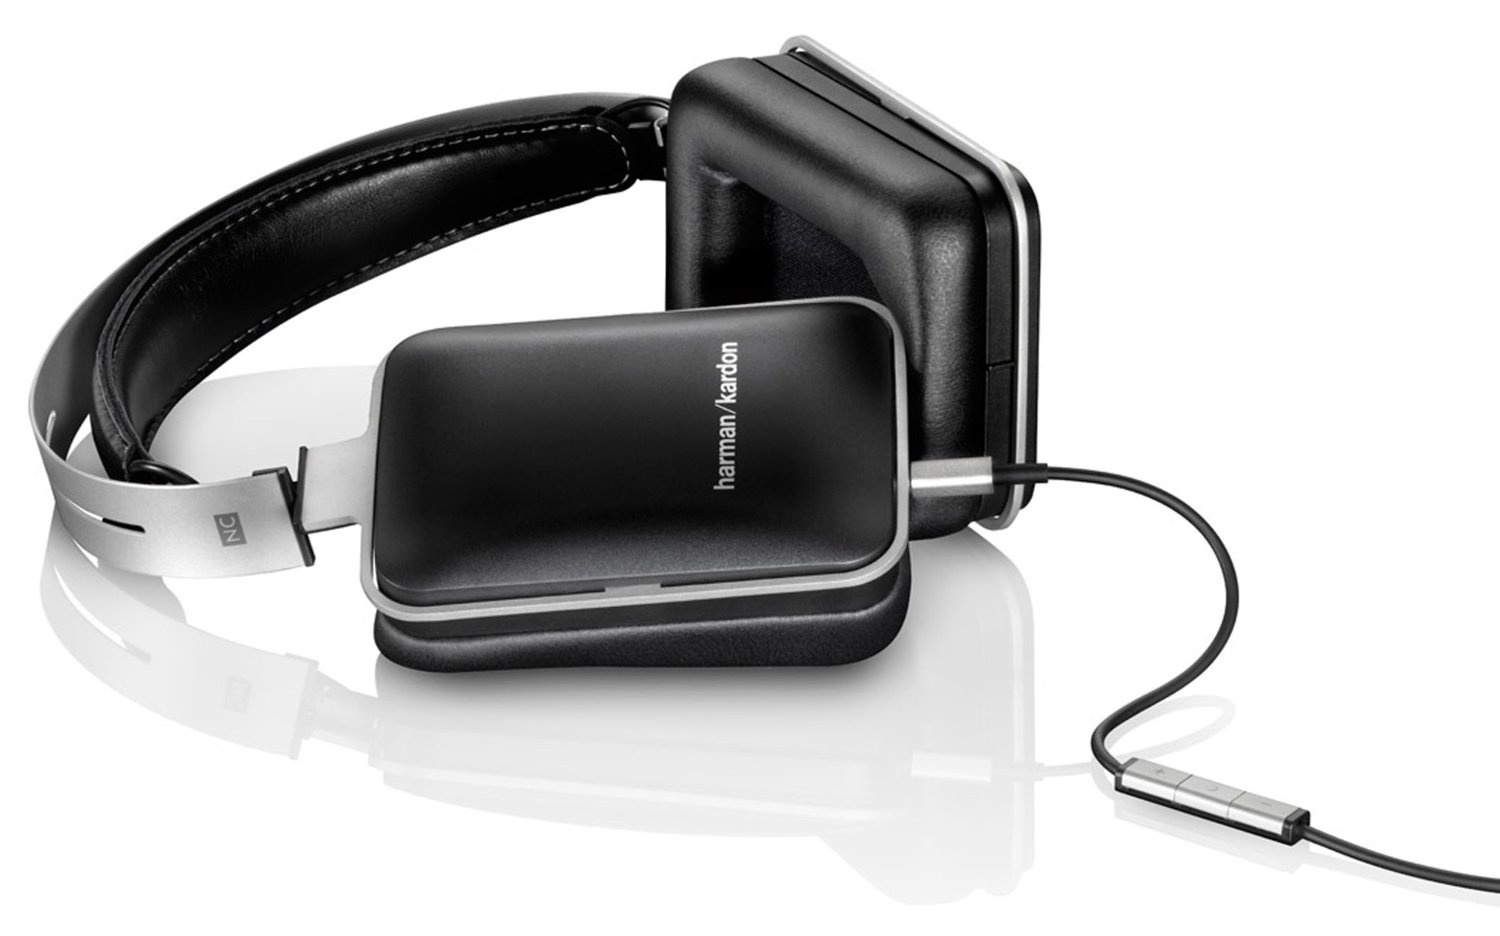 Harmon Kardon Noise Canceling Headphones